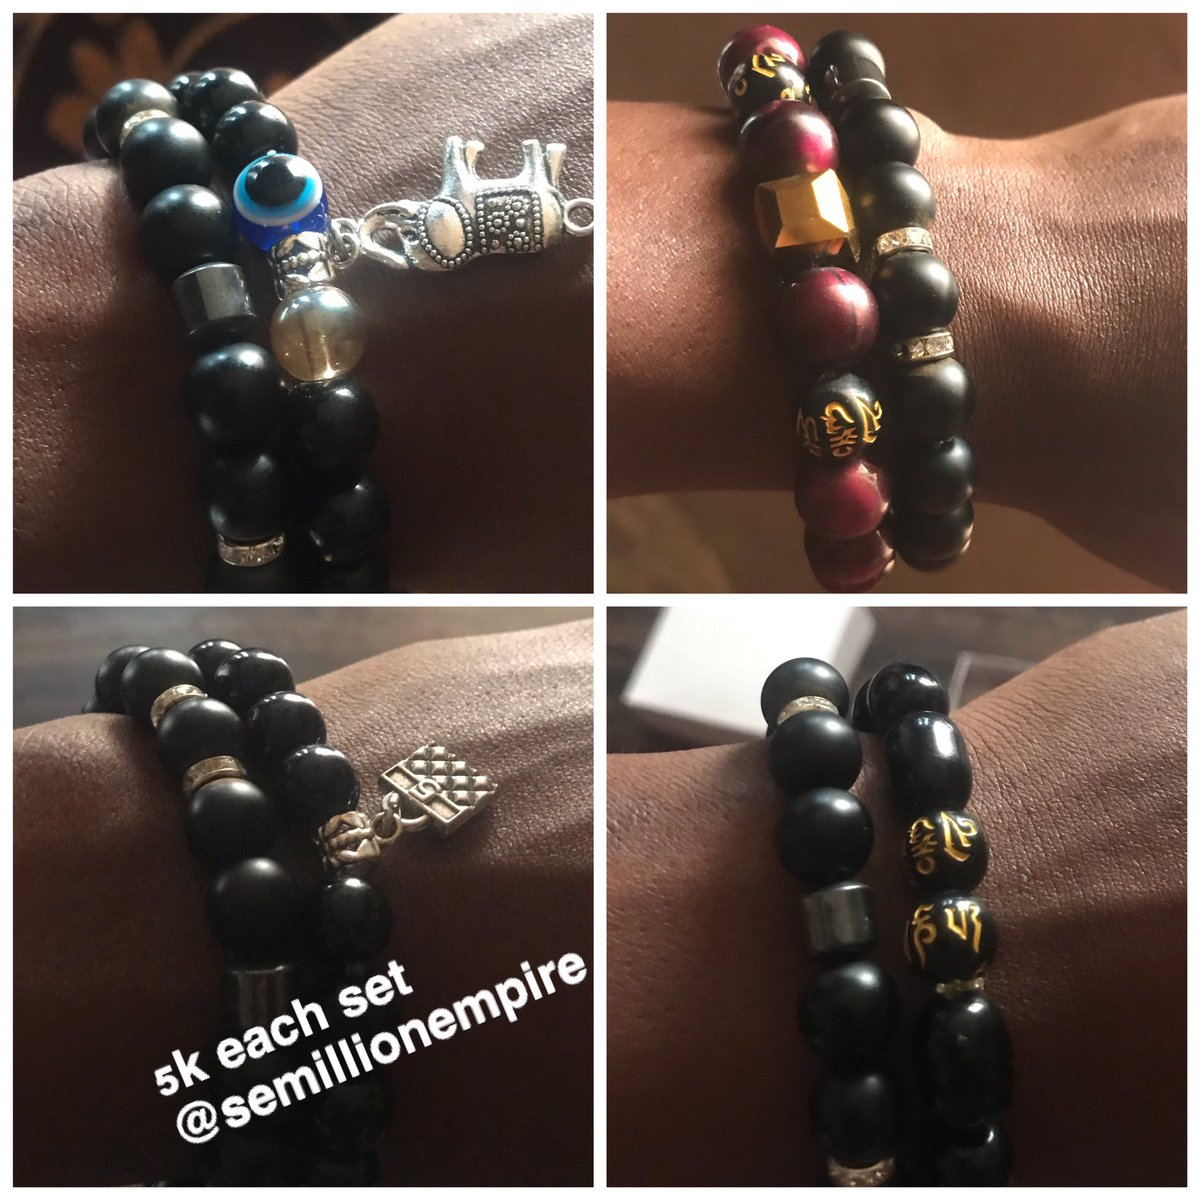 Shop these beautiful and classy stuffs on @SemillionEmpire for your love ones this valentines!  WhatsApp:  Location: Abuja   Durags ✅ Bracelets ✅ Pink lips balm ✅  Check the pictures for price tags   Delivery nationwide 👍